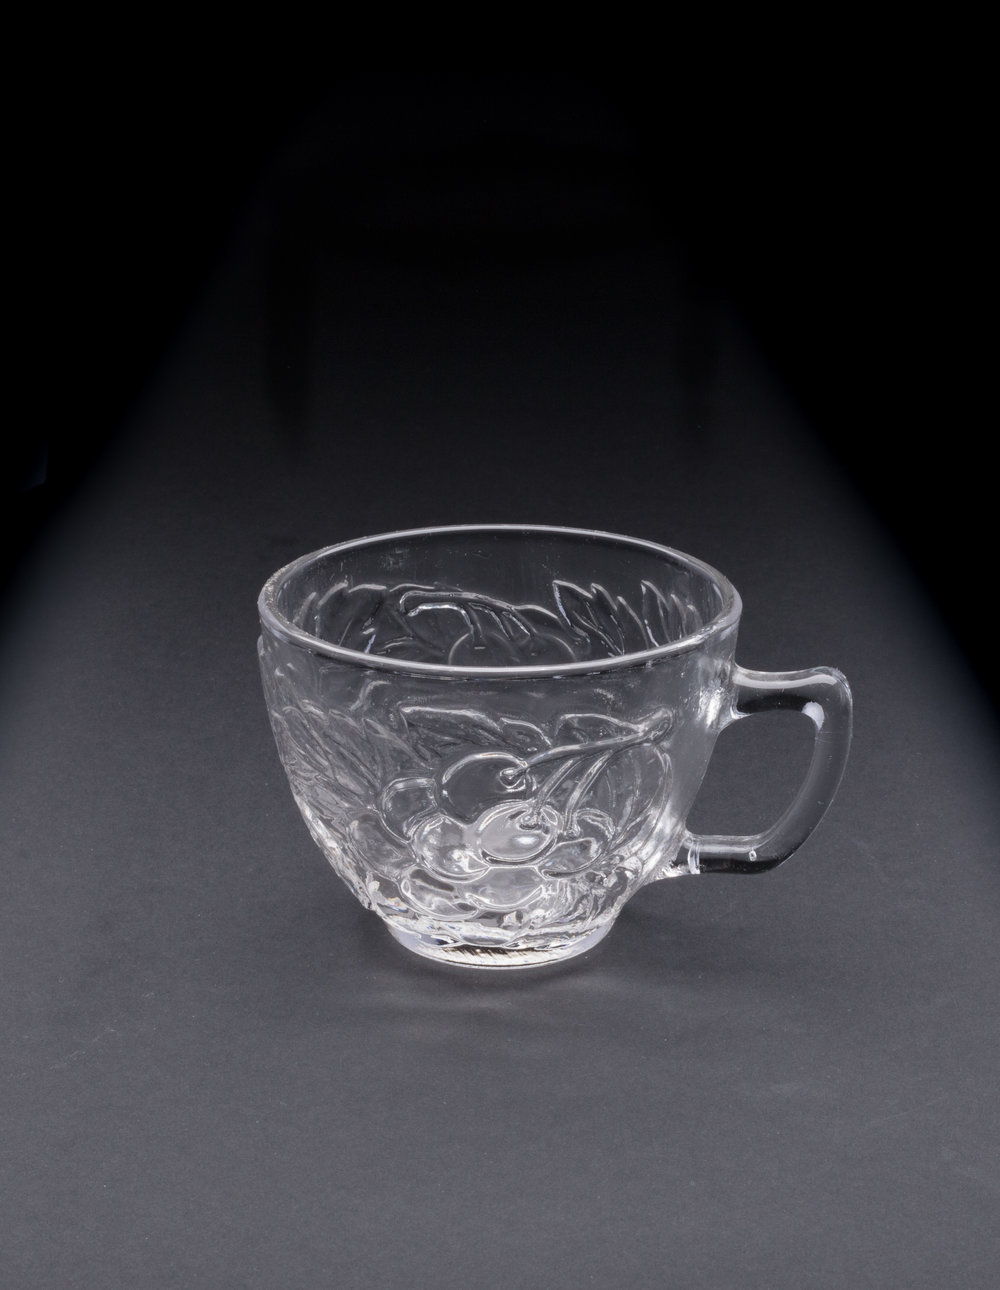 Punch Cup - 7 oz.